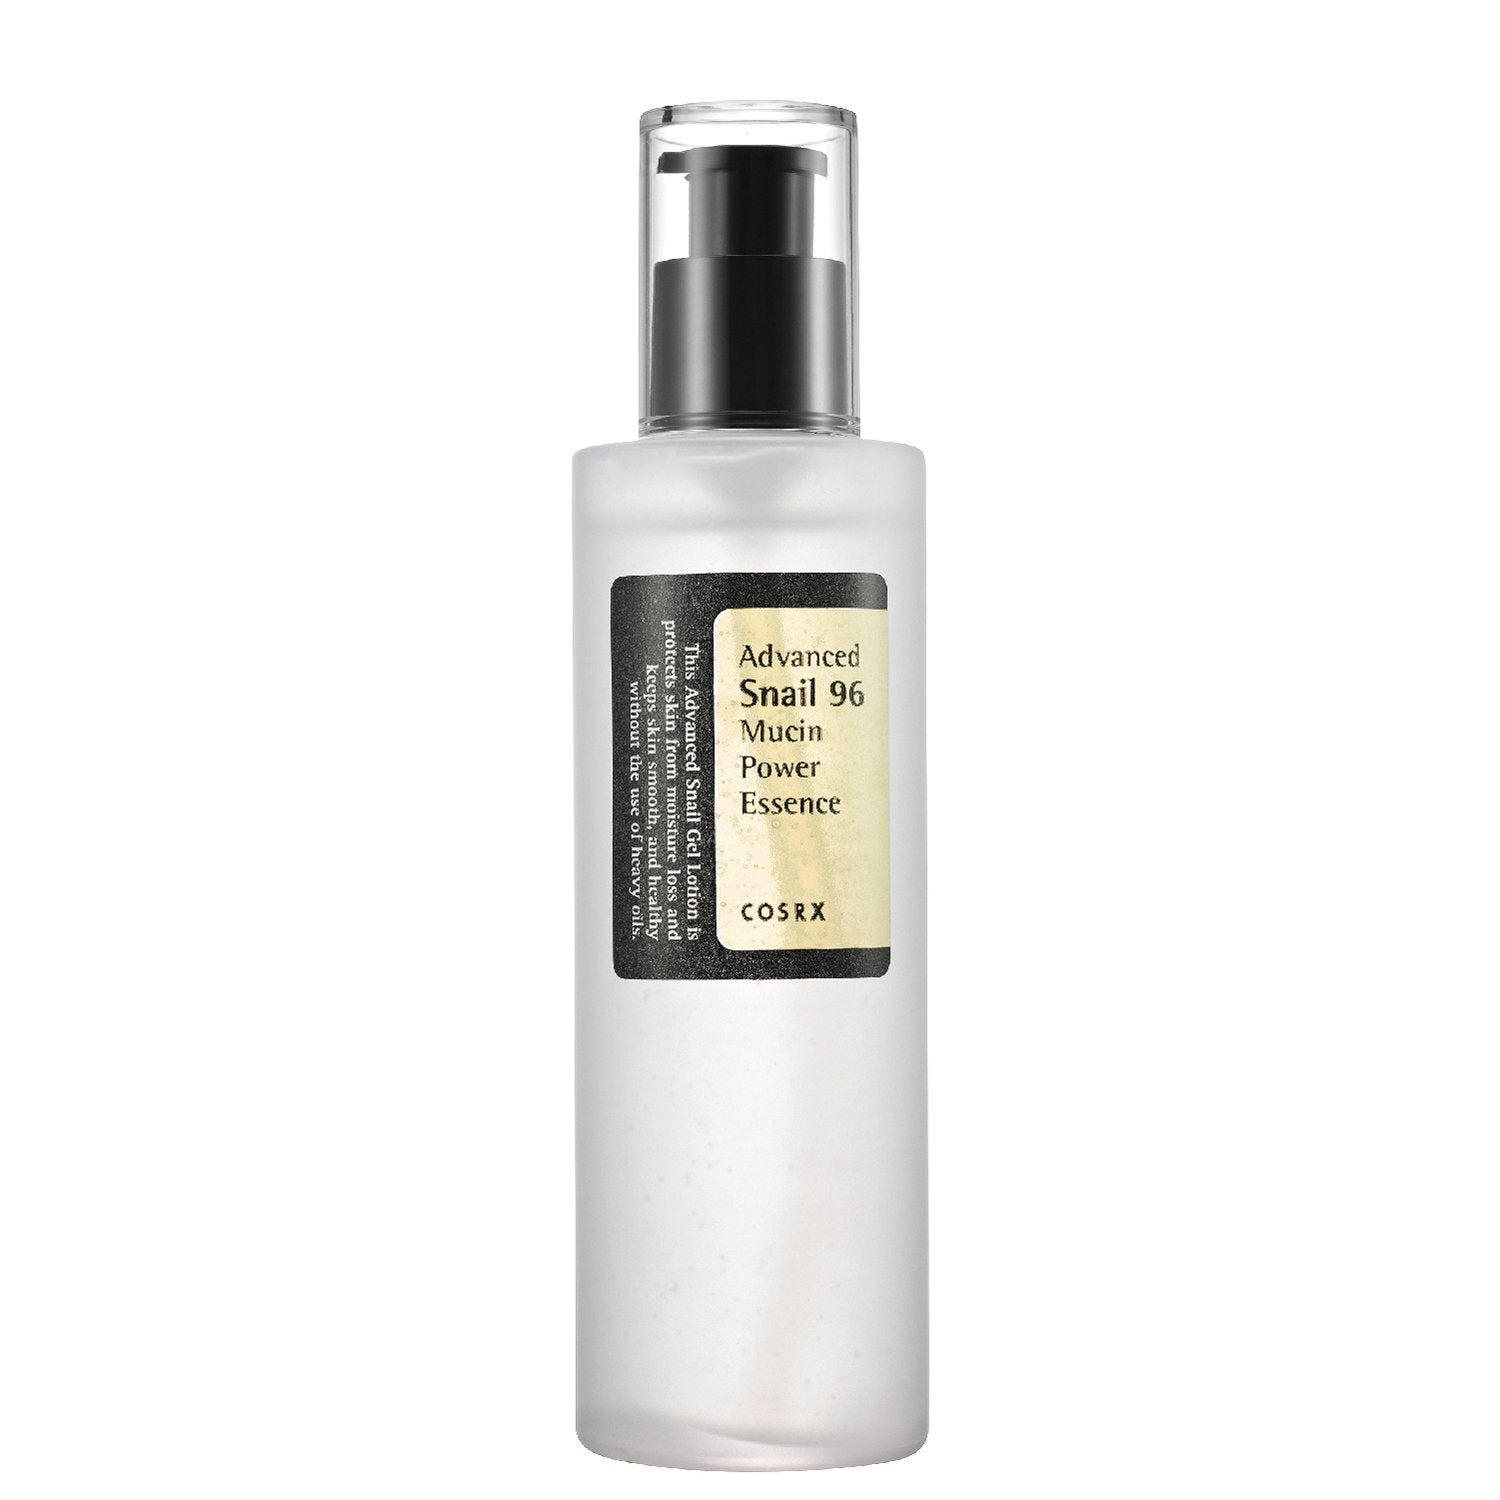 Advanced Snail 96 Mucin Power Essence (100ml) Essence COSRX